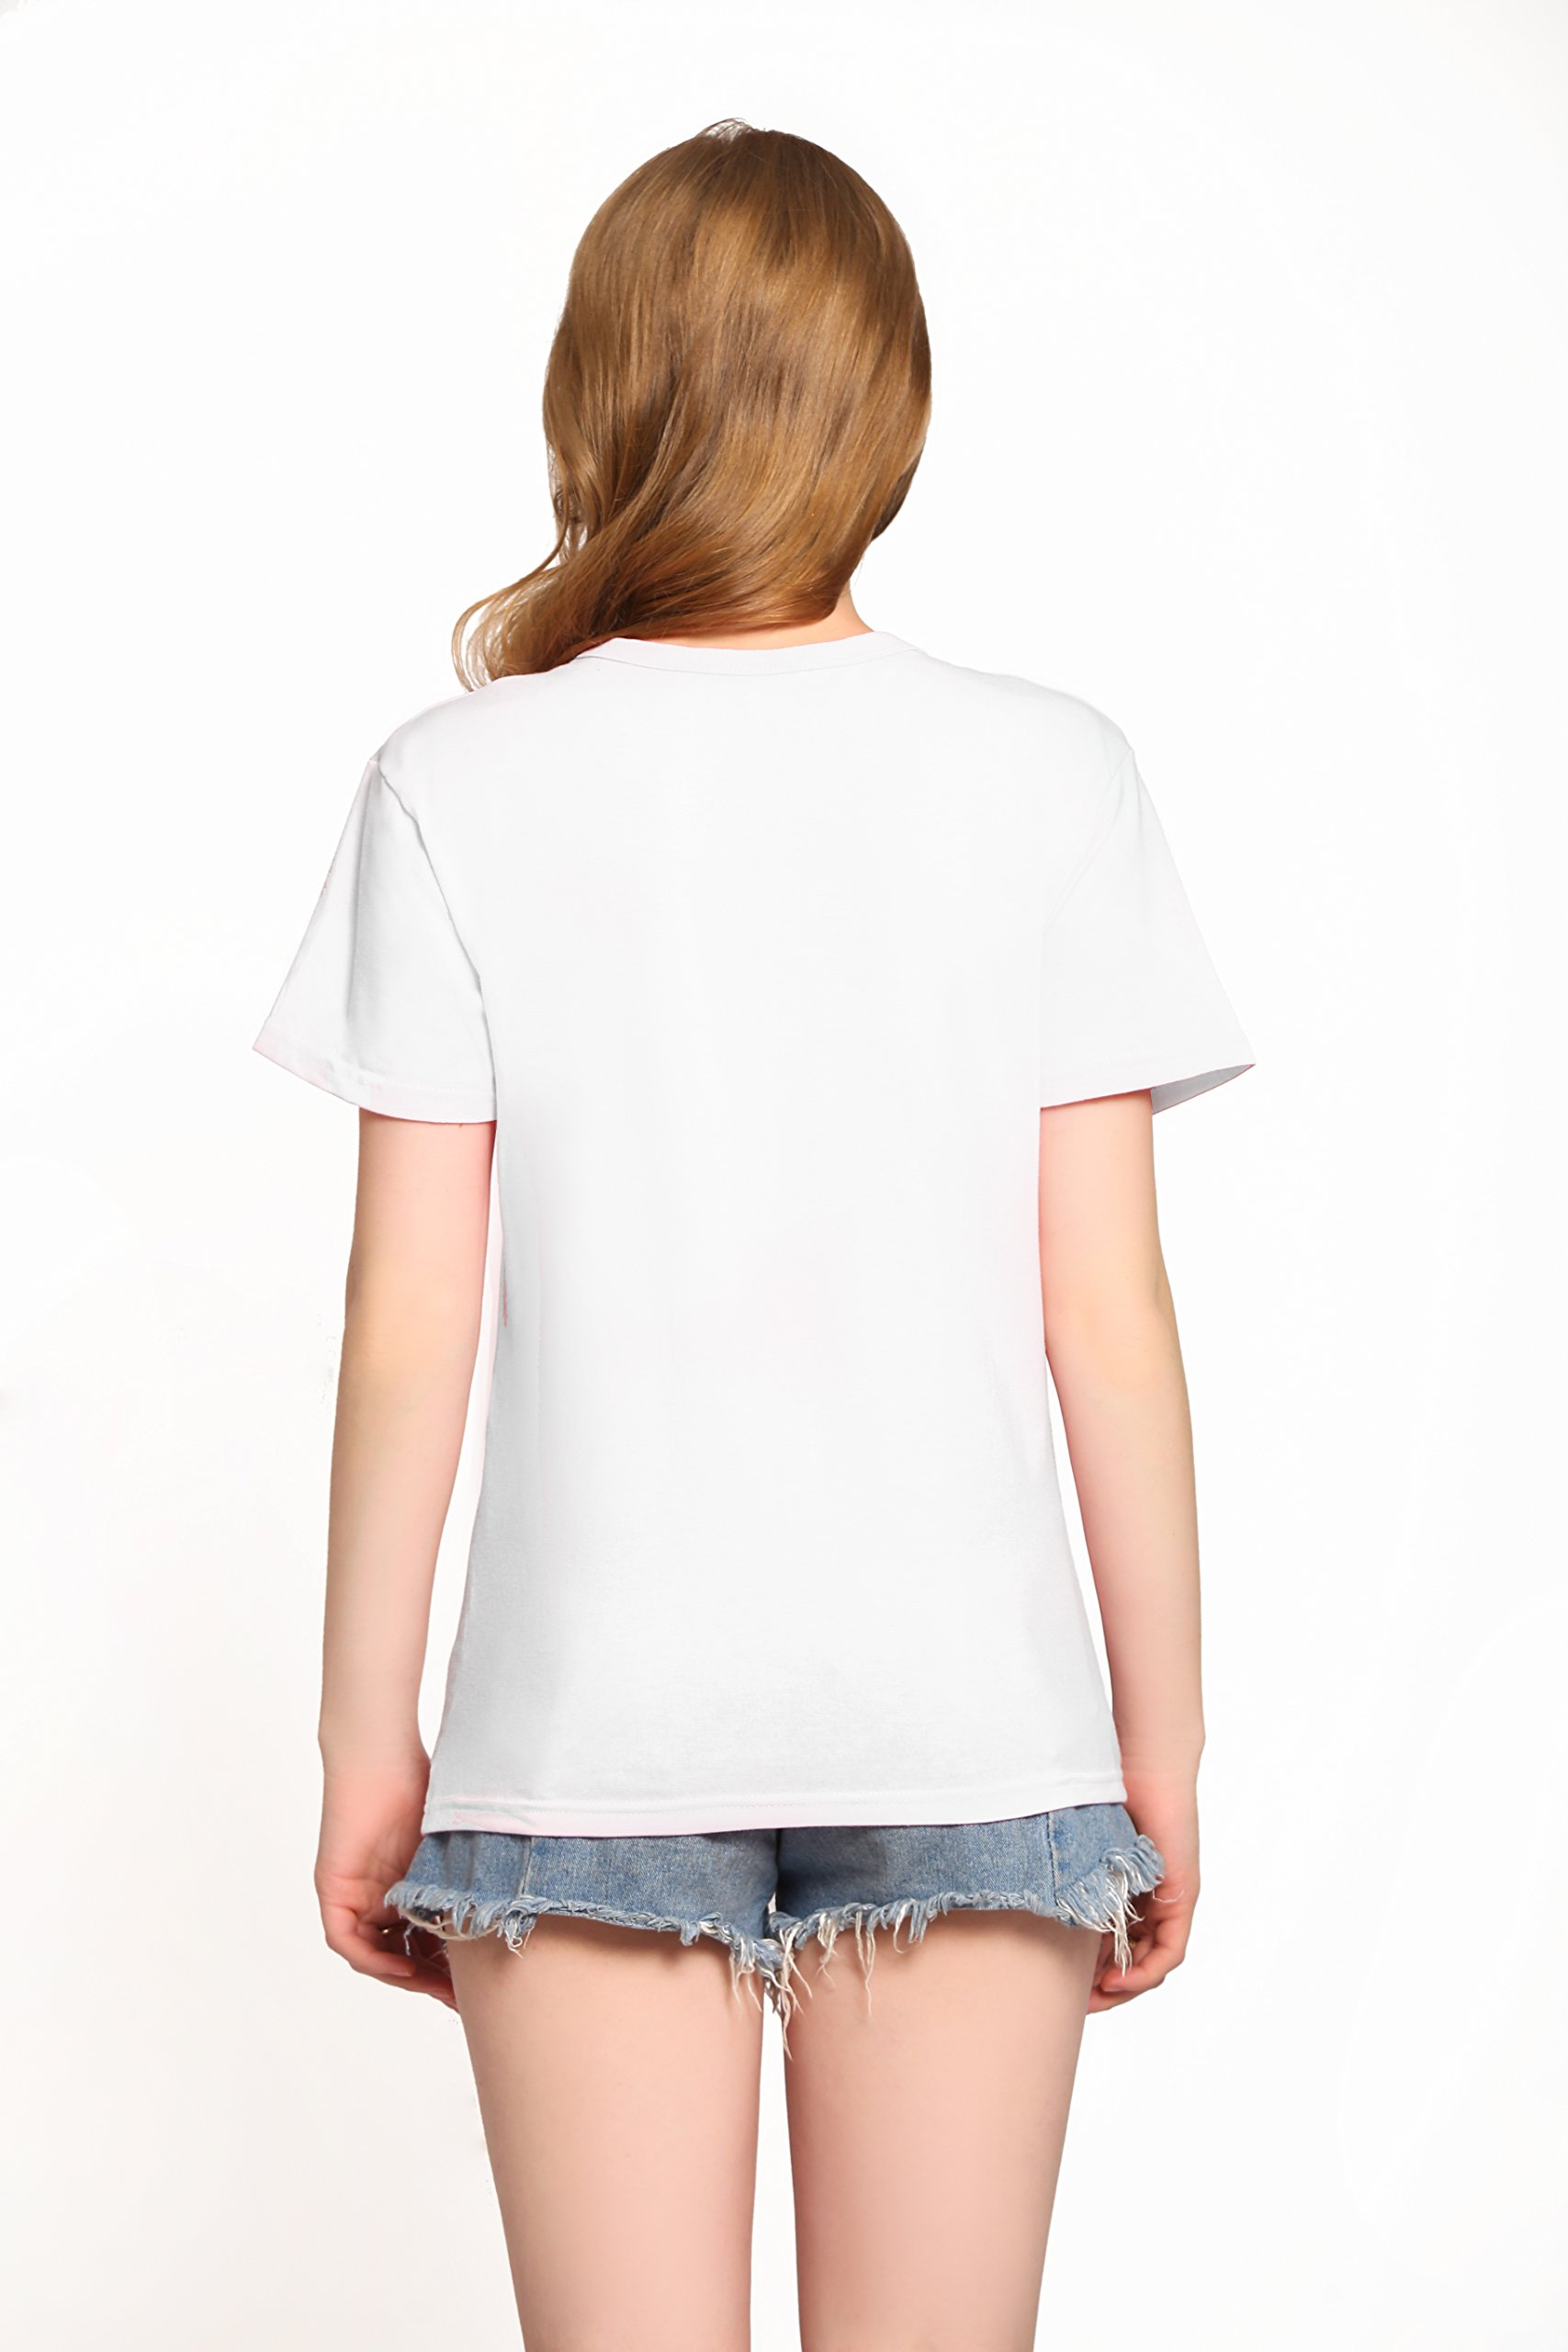 PINJIA Womens Cotton Letter Printed Pullover Tshirts Top Tees(MX15)(XXL,White Bitches Switch)